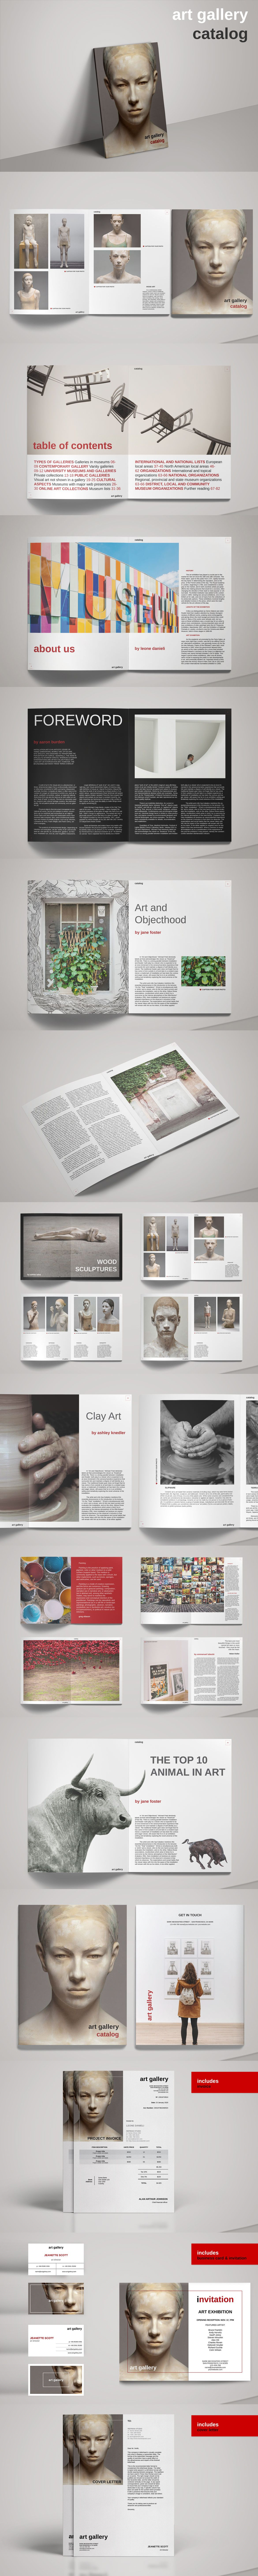 Art Gallery Exhibition Catalog And Business Card Invoice